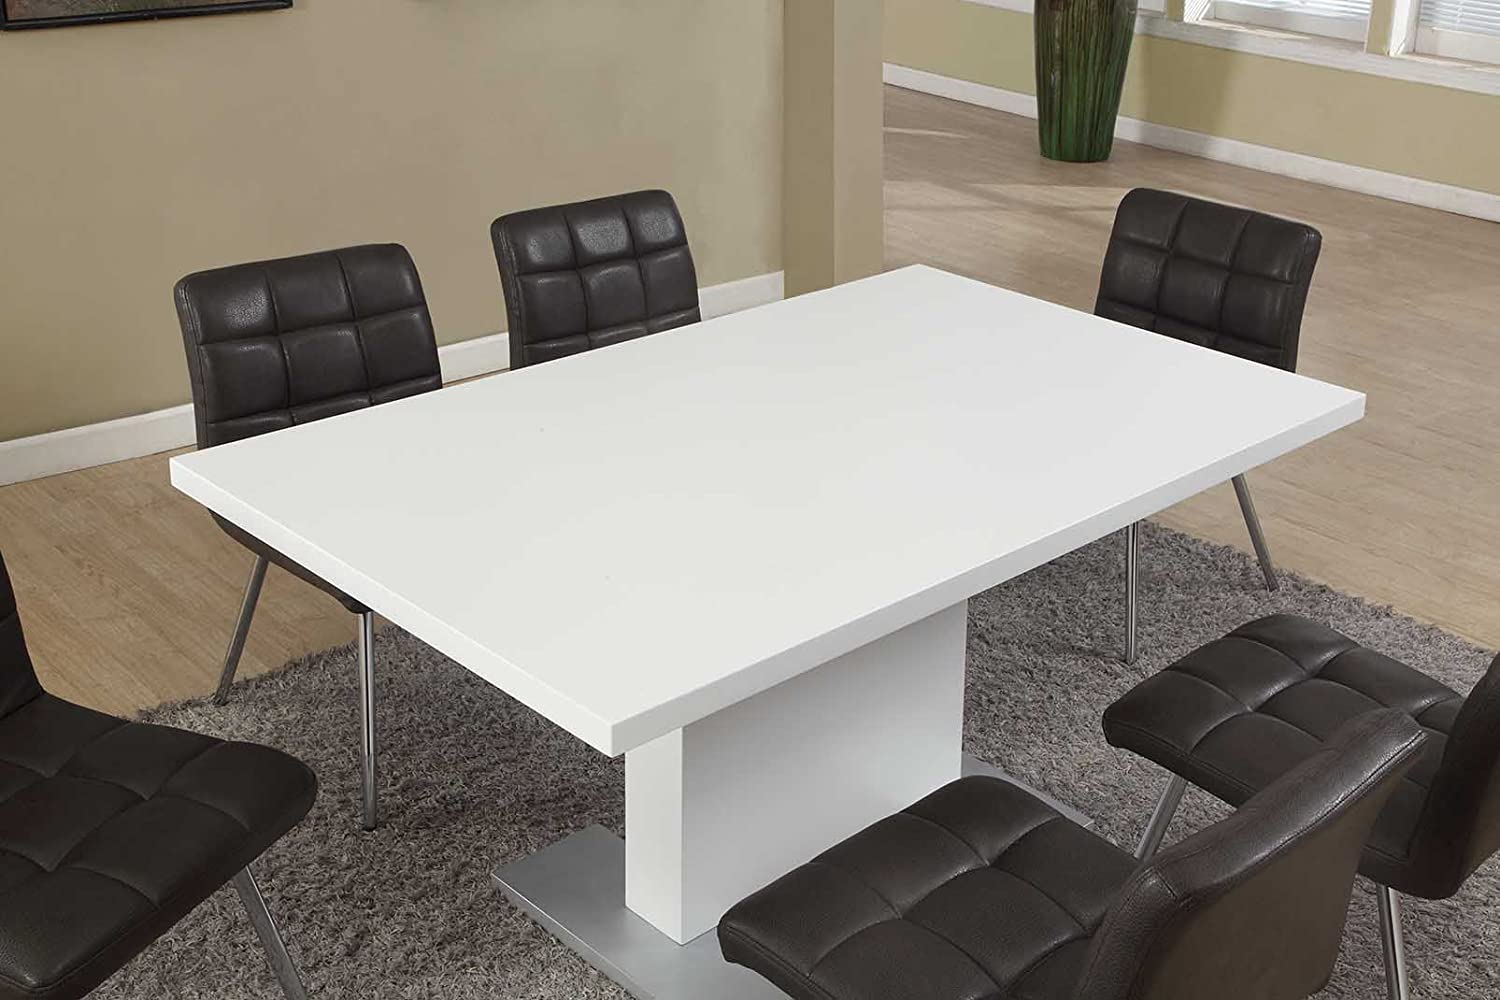 Max 62% OFF Monarch Specialties High Glossy White Dining 35 x Oakland Mall Table 60-Inch